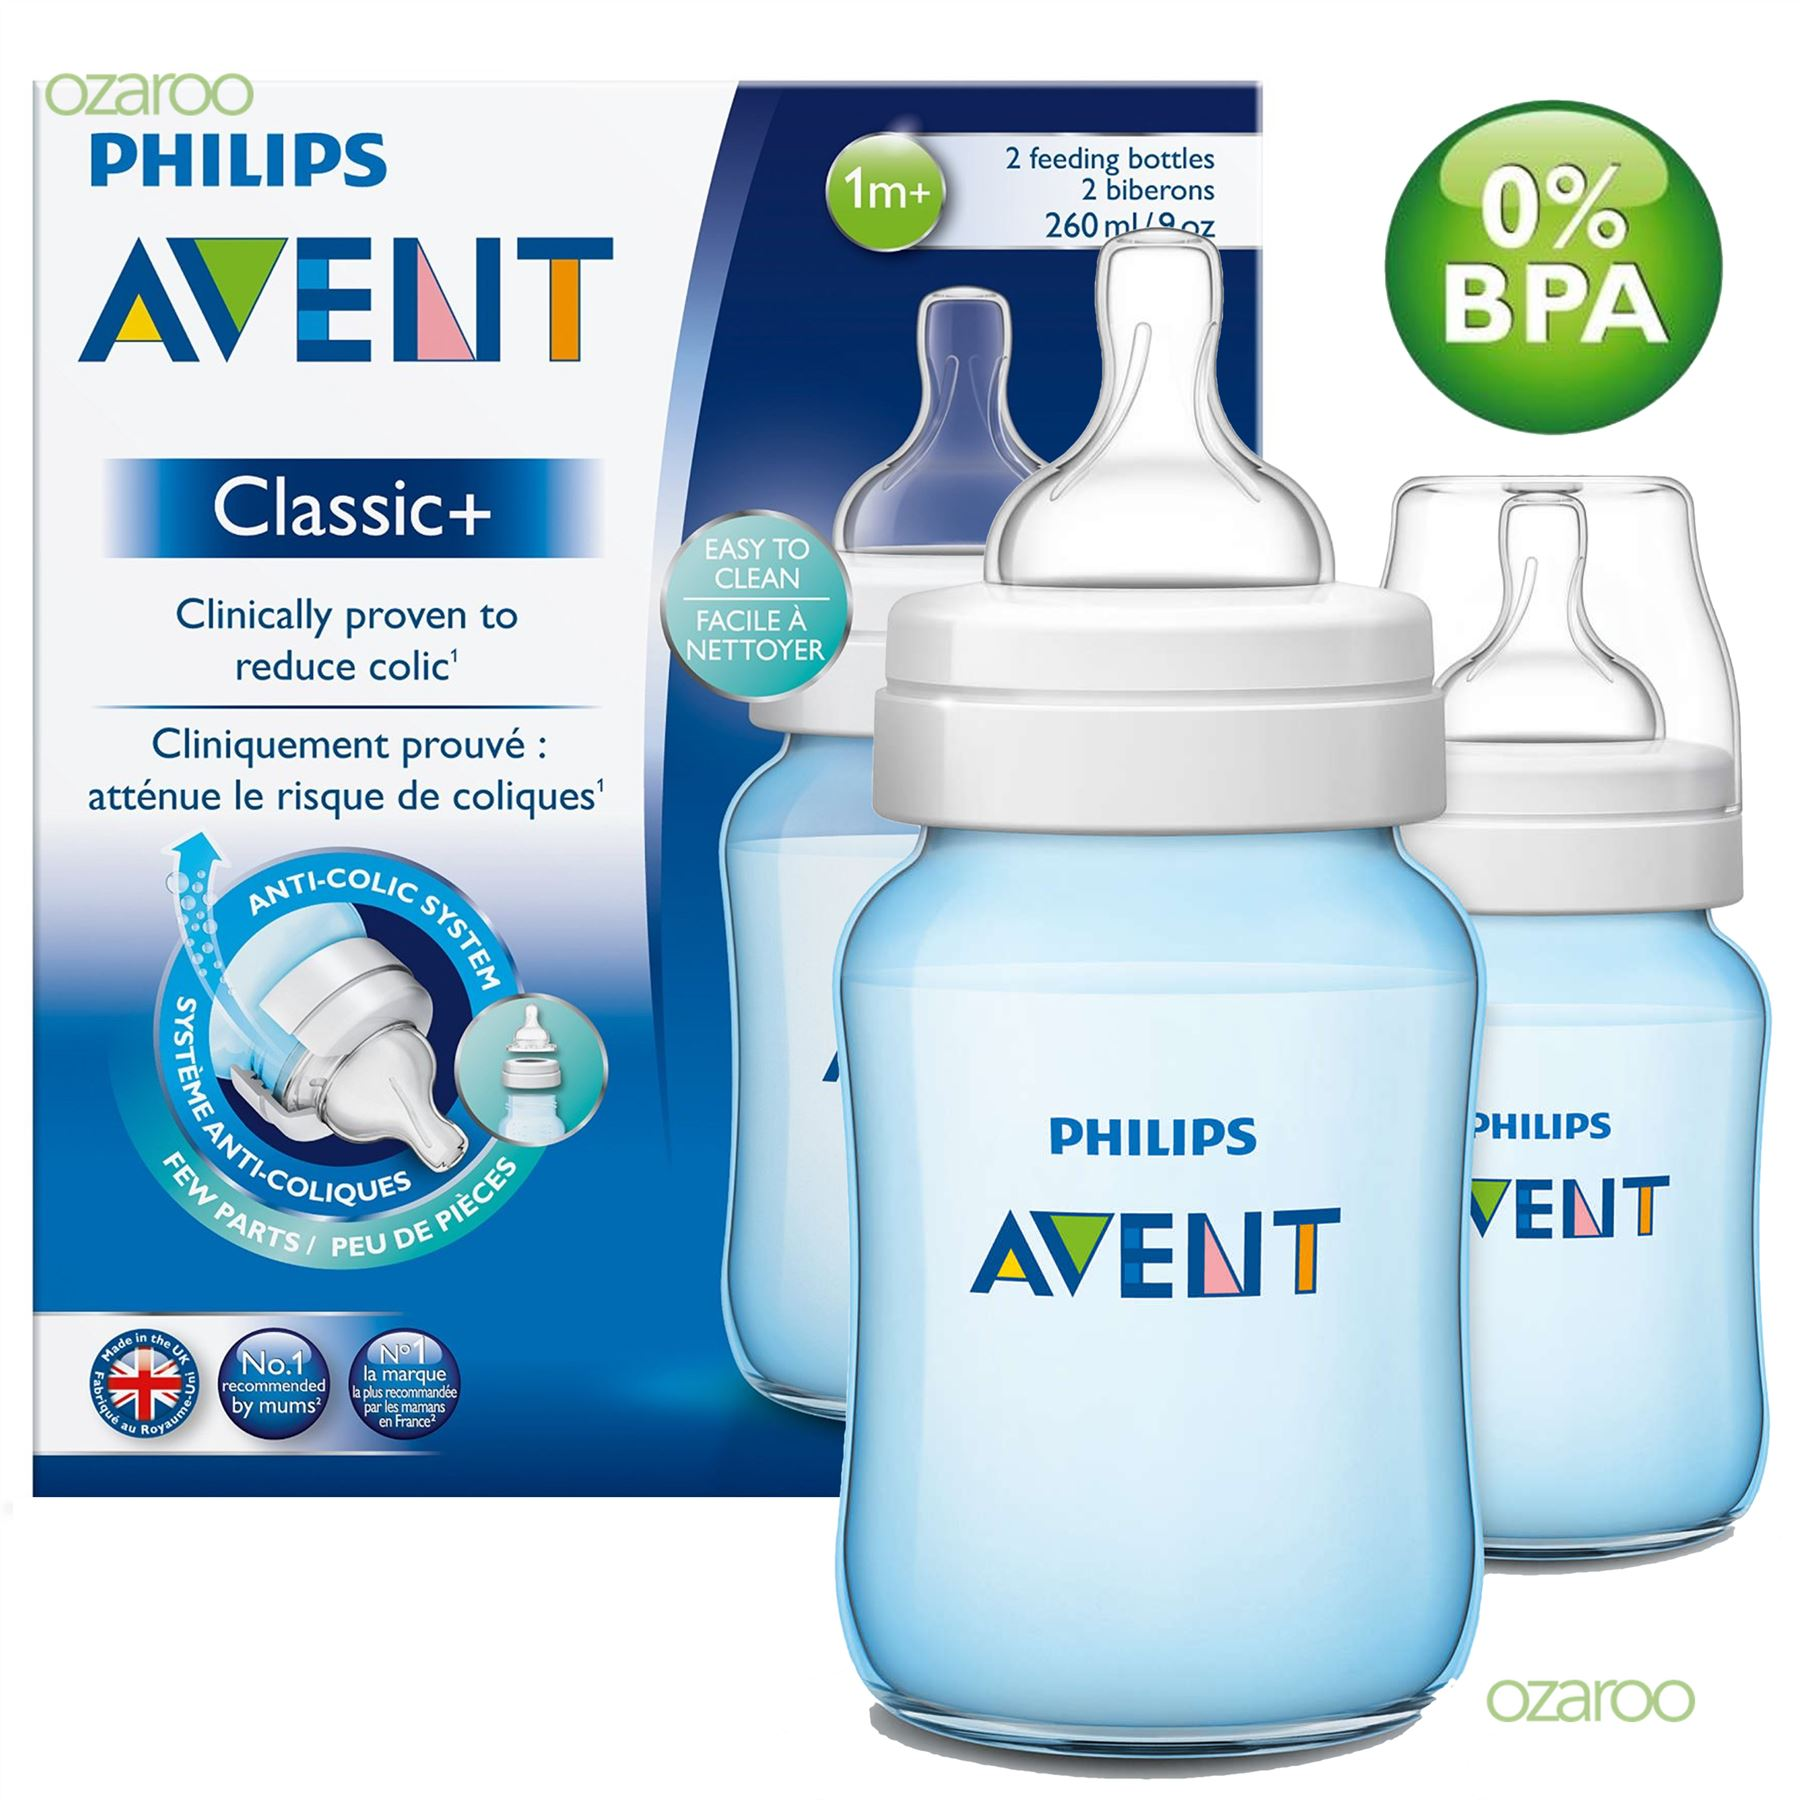 philips and baby bottles Find the perfect philips avent baby bottles & teats discover the entire philips  avent range, read reviews, order online today or find your local store.